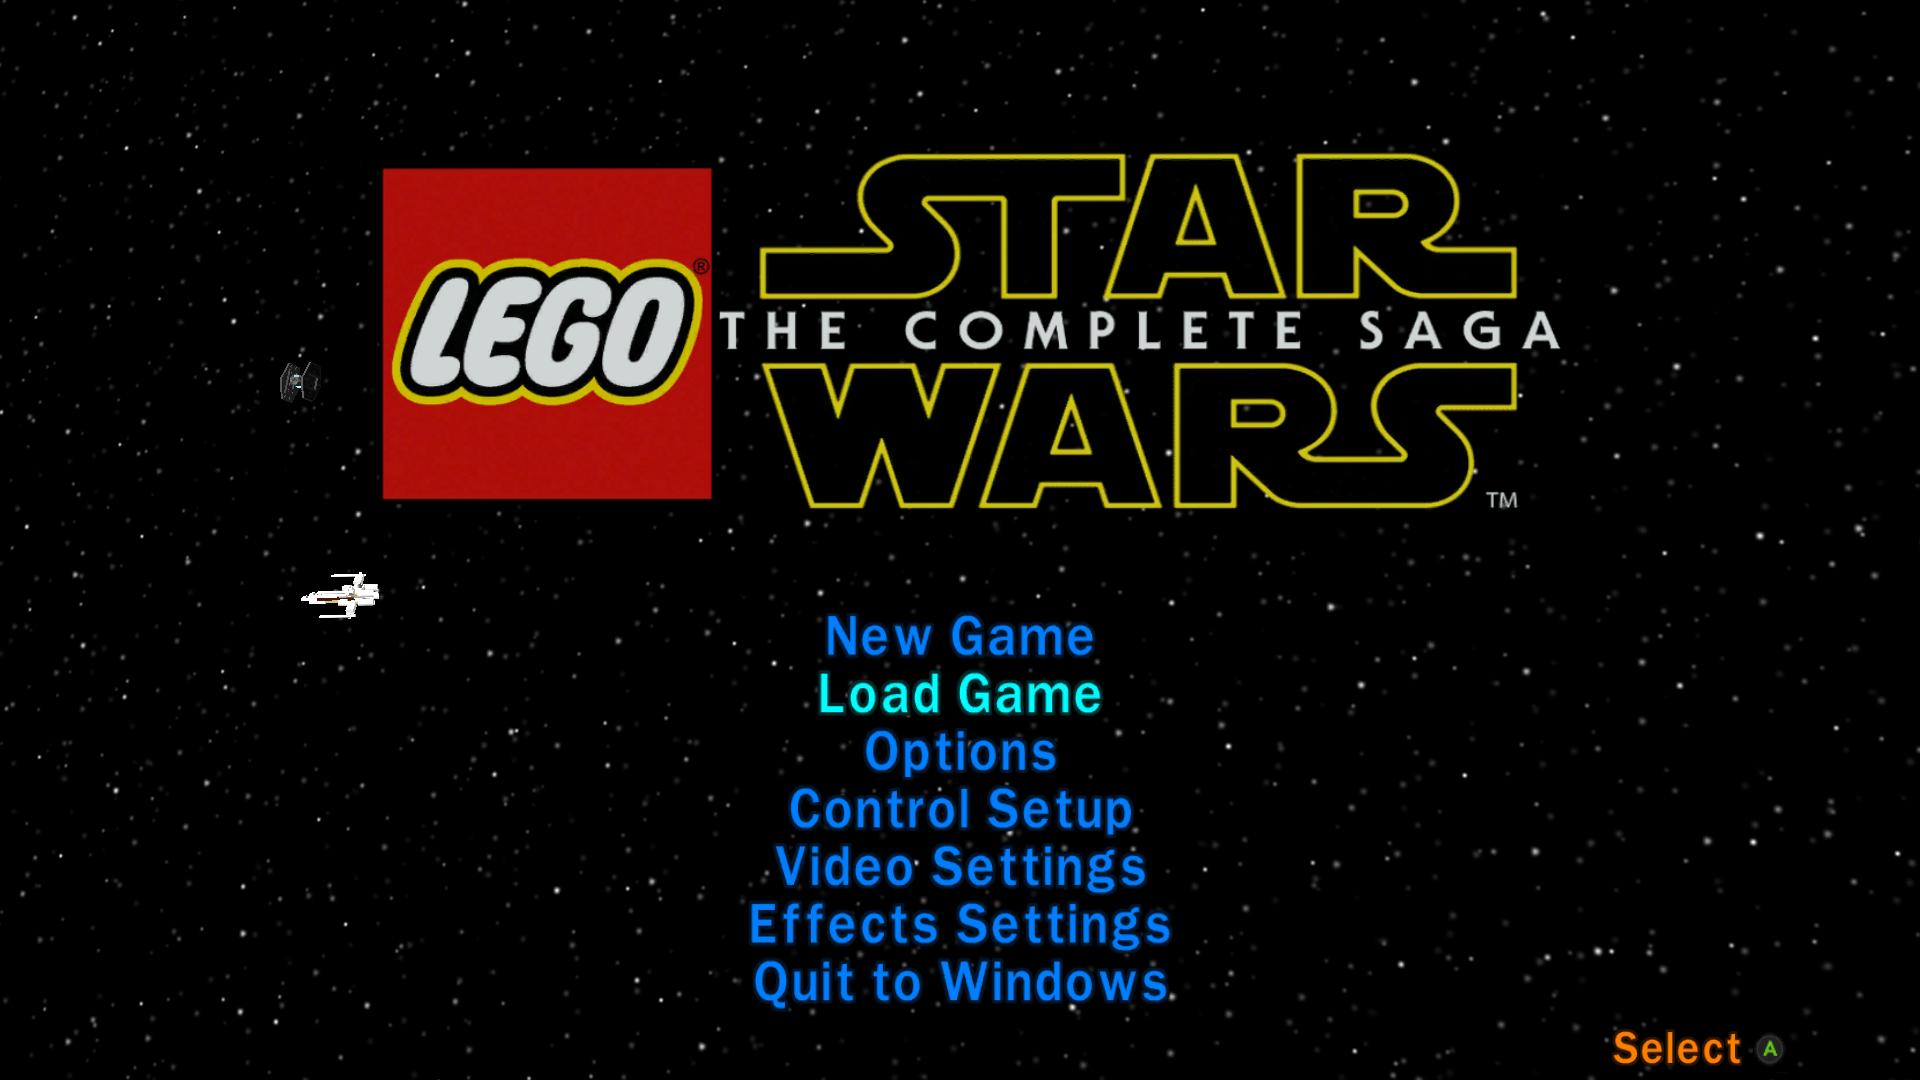 Image 13 Lego Star Wars Modernized Character Texture Pack For Lego